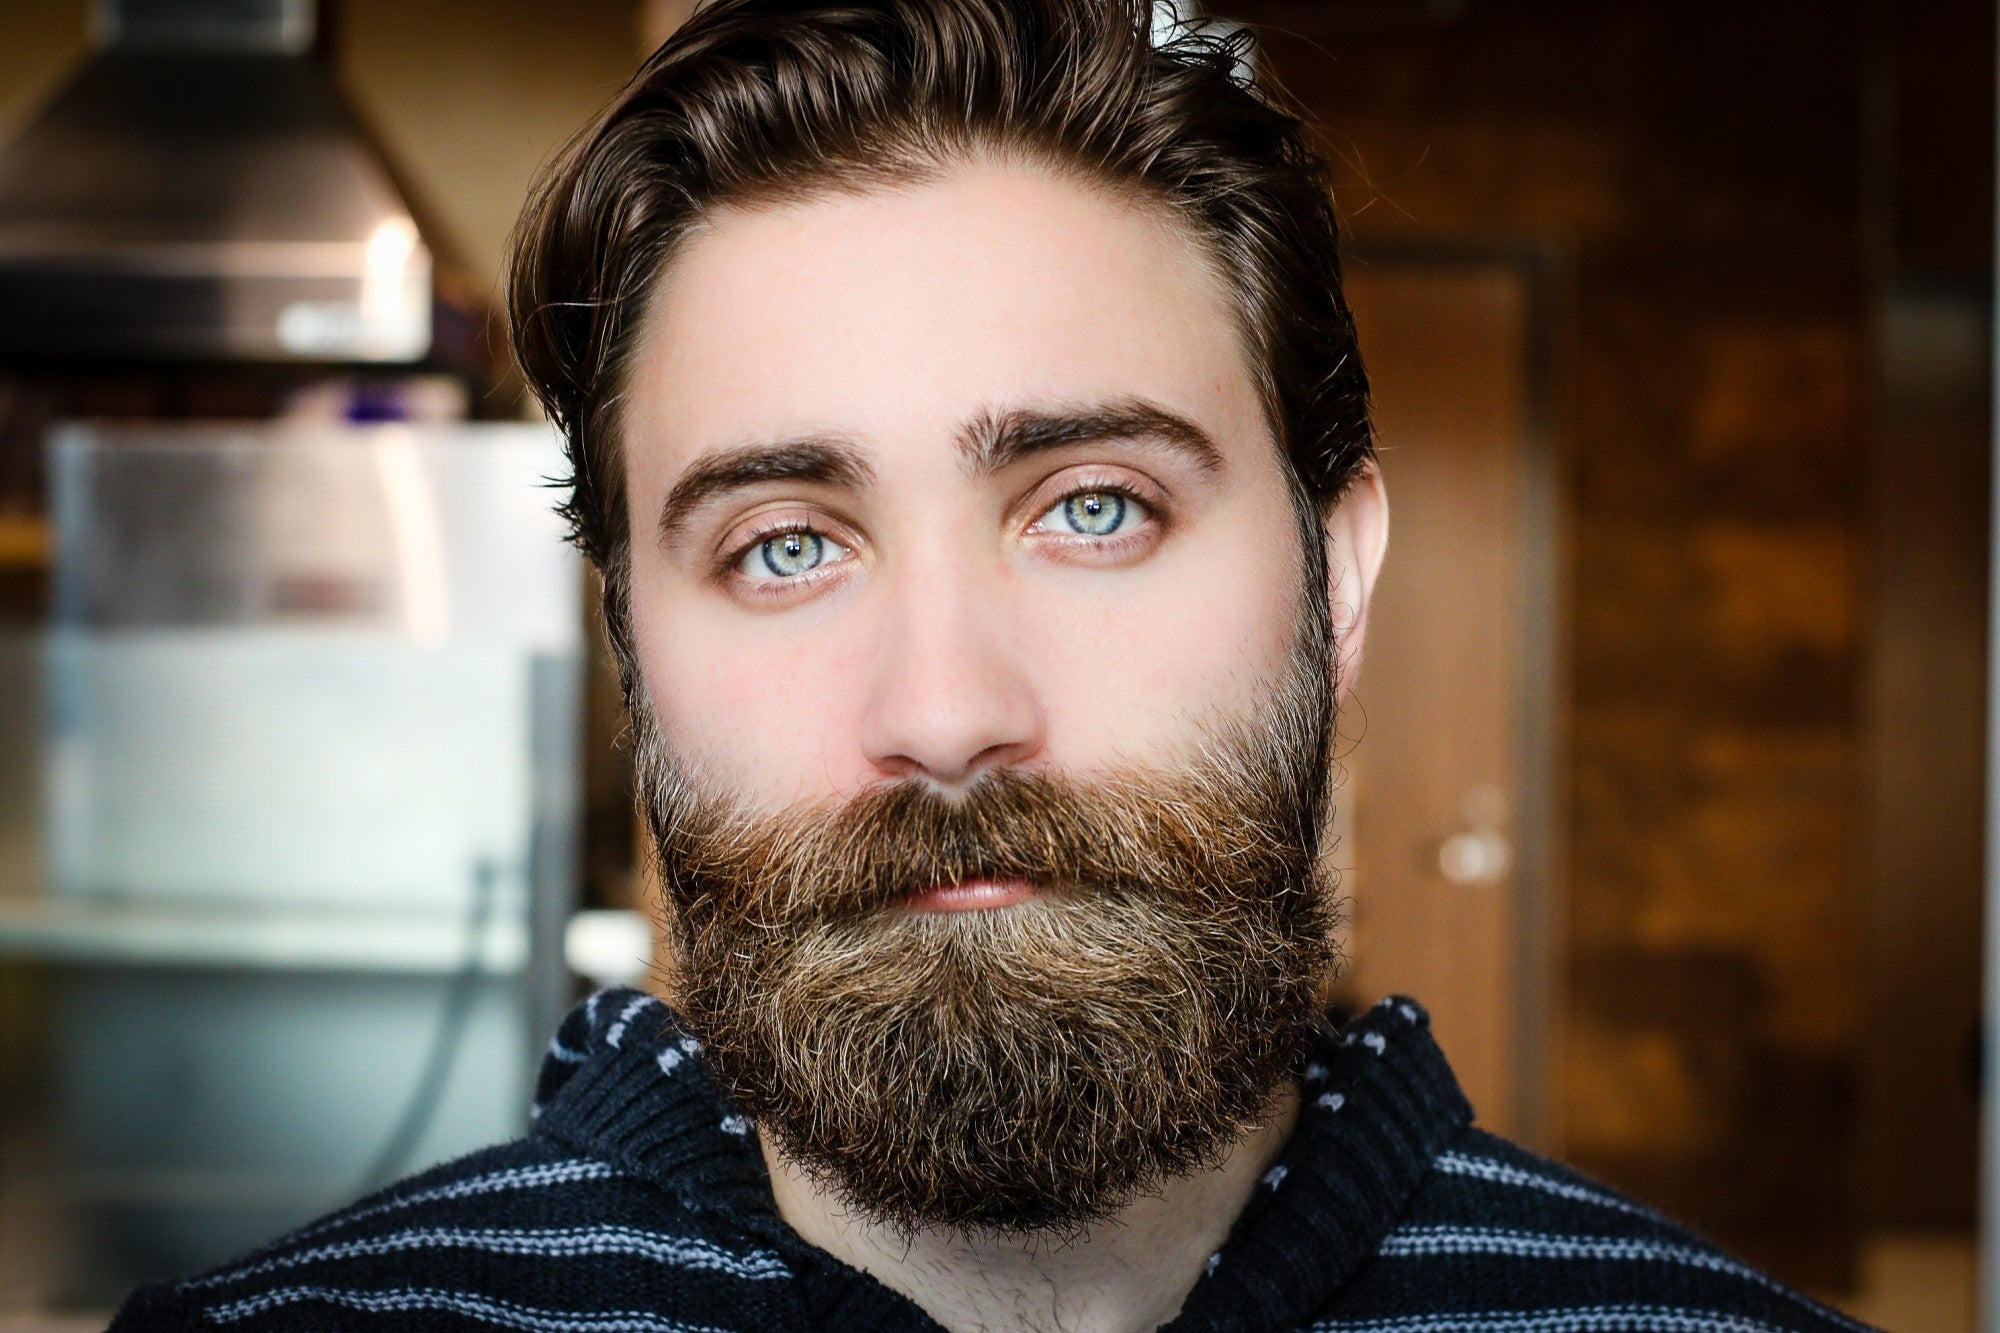 What a Gorgeous Beard! You Must Use the Best Beard Shampoo Ever